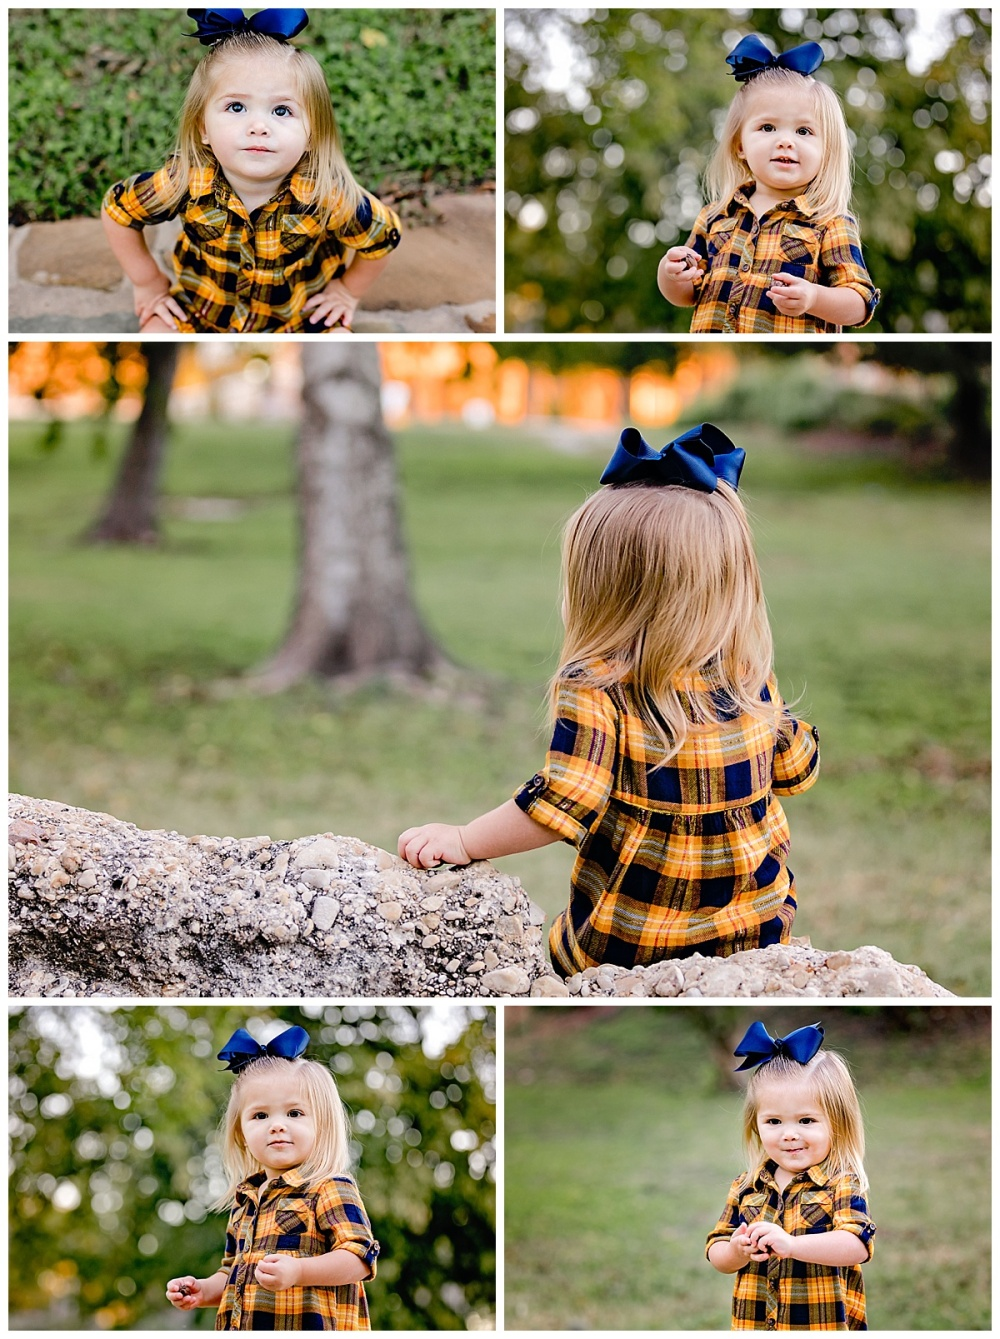 Landyn-Two-Year-Birthday-Photos-Walnut-Springs-Park-Seguin-Texas-Carly-Barton-Photography_0004.jpg